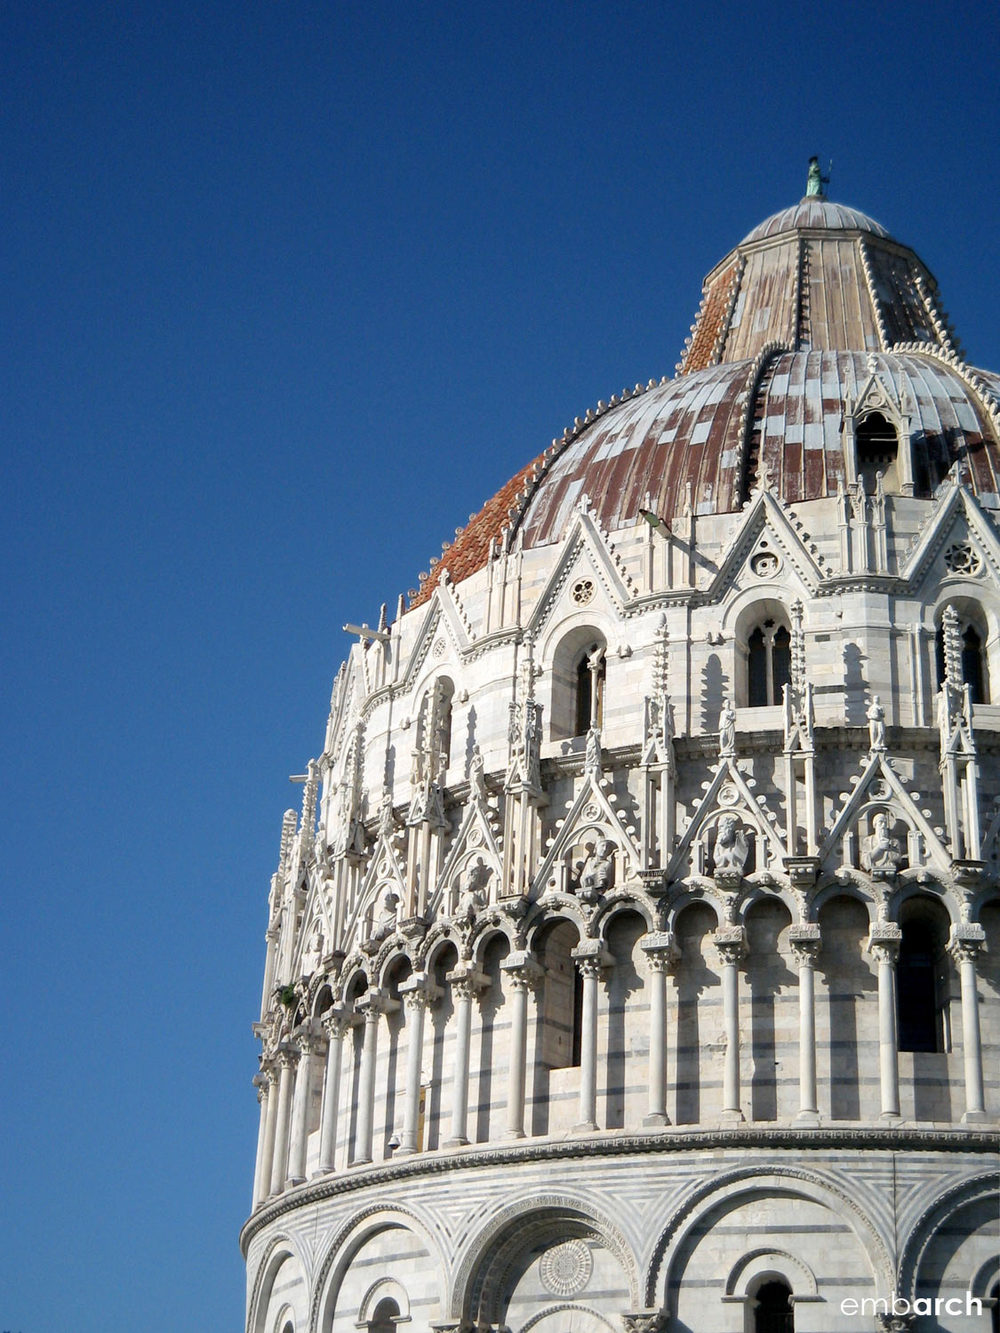 Piazza del Duomo, Pisa Italy - baptistery exterior detail